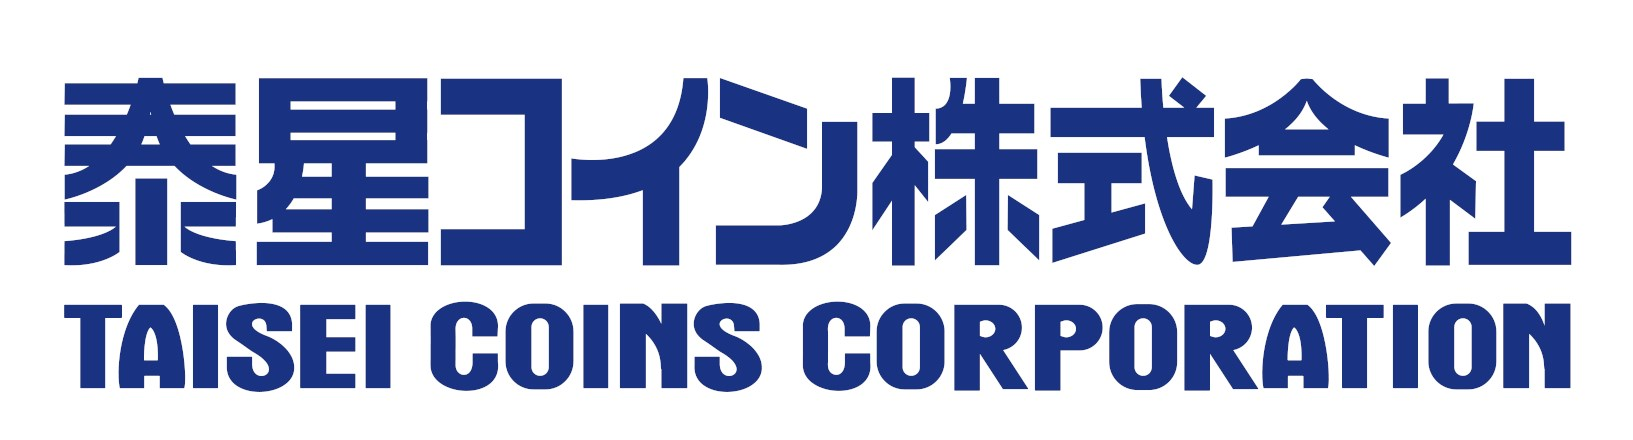 NGC, NCS and PMG Appoint Taisei Coins Corporation an